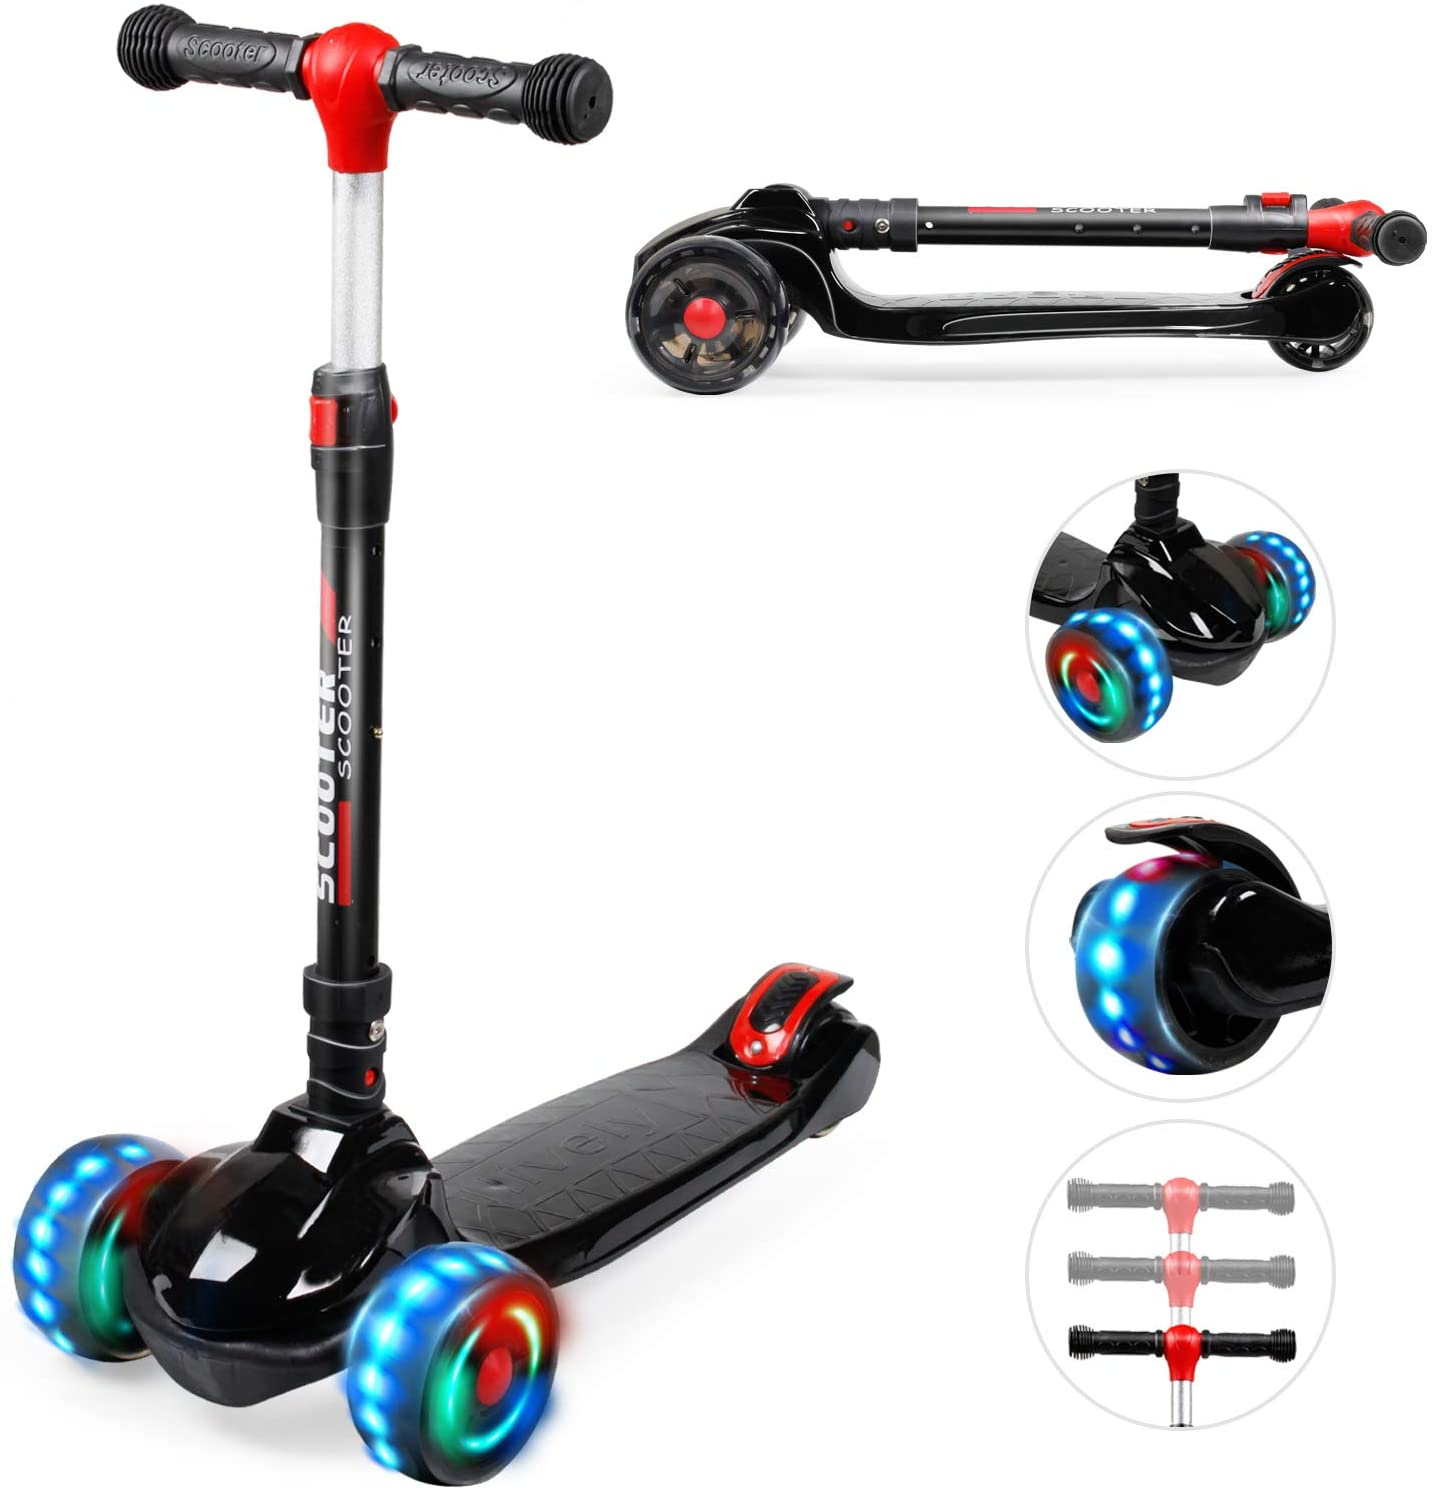 YHR Toddler Scooter with 3 Wheel Extra-Wide PU LED Flashing Wheels - 3 Wheel Kids Scooter Have 3 Adjustable Heights - Kick Scooter for Kids 2-8 Year Old boy & Girl